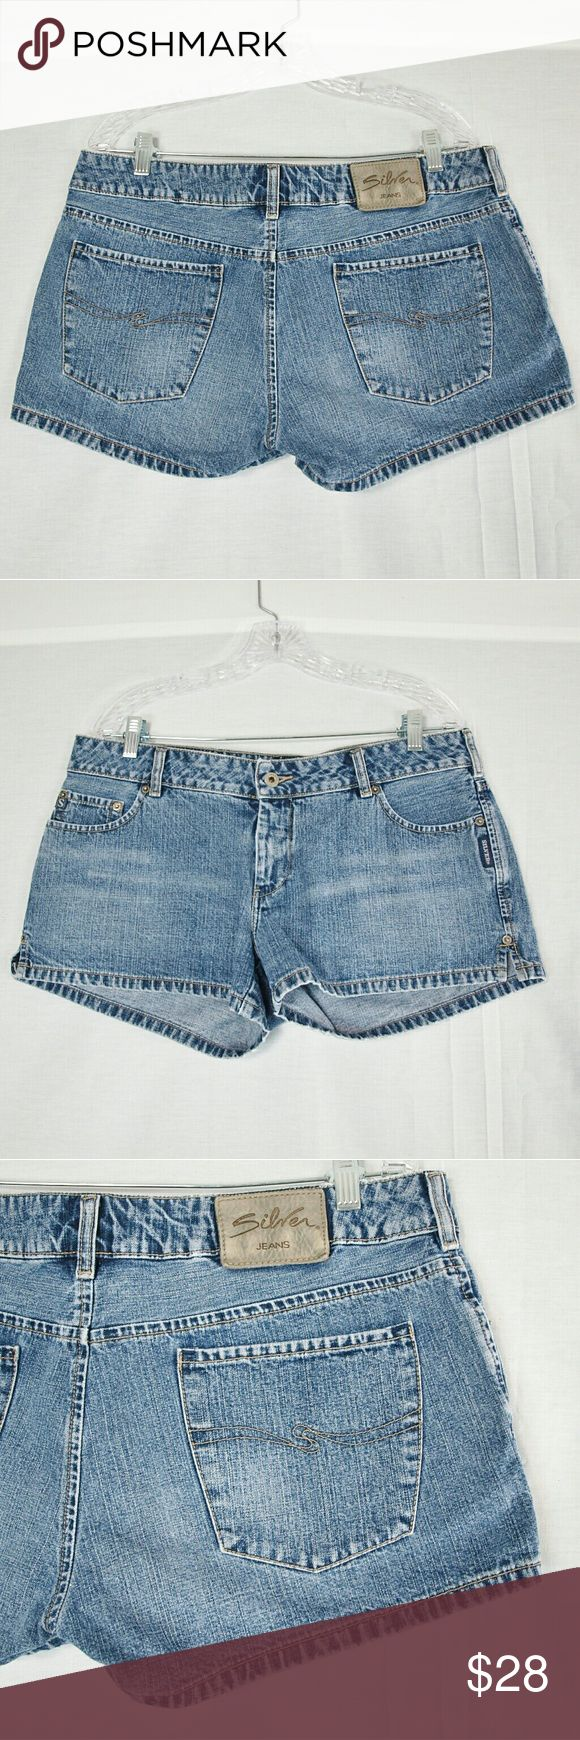 "Women's Silver Jeans Denim Shorts Size 34 In great condition (no rips, tares or stains). Waist: 38"" around length: 13"". 100% cotton. Add to a bundle to receive 20% off. Offers welcomed.  Bin h8 Silver Jeans Shorts Jean Shorts"